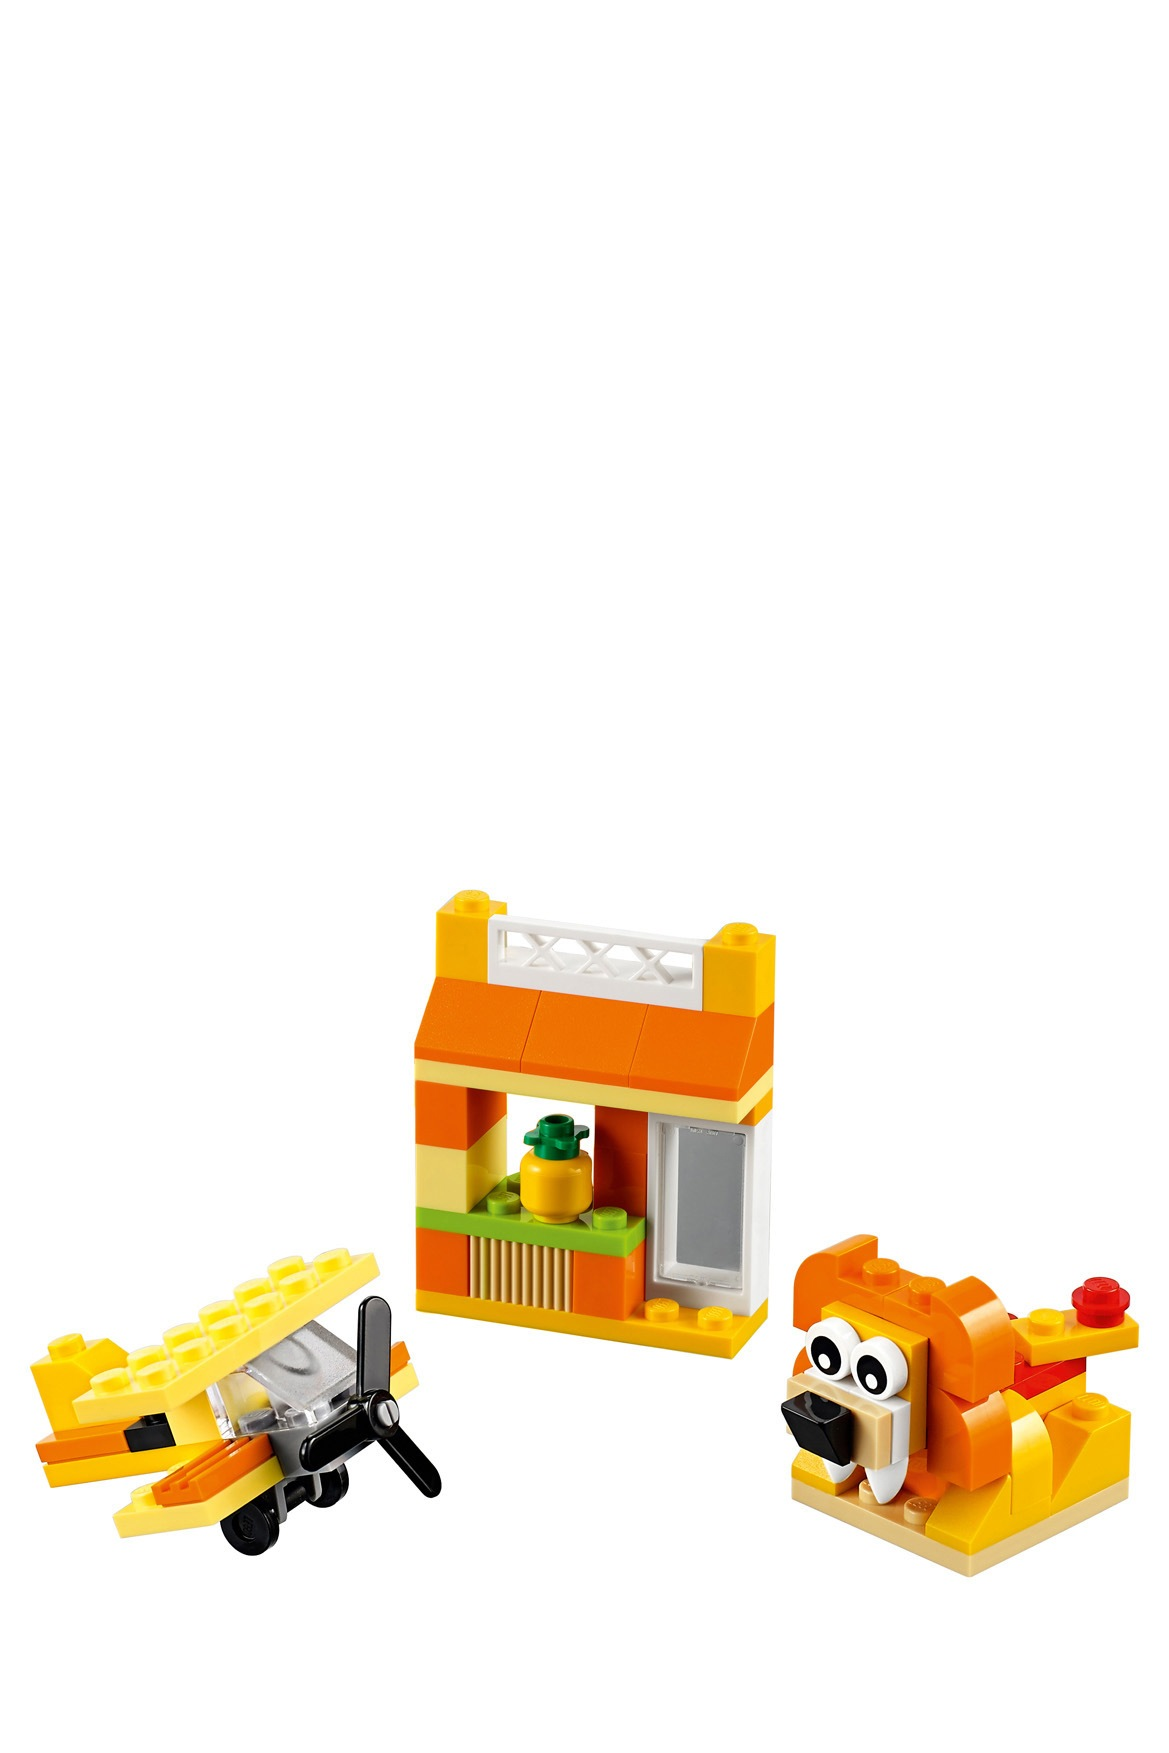 Lego Classic Orange Creativity Box 10709 Myer Online Categoryname Details Discover Your Creative